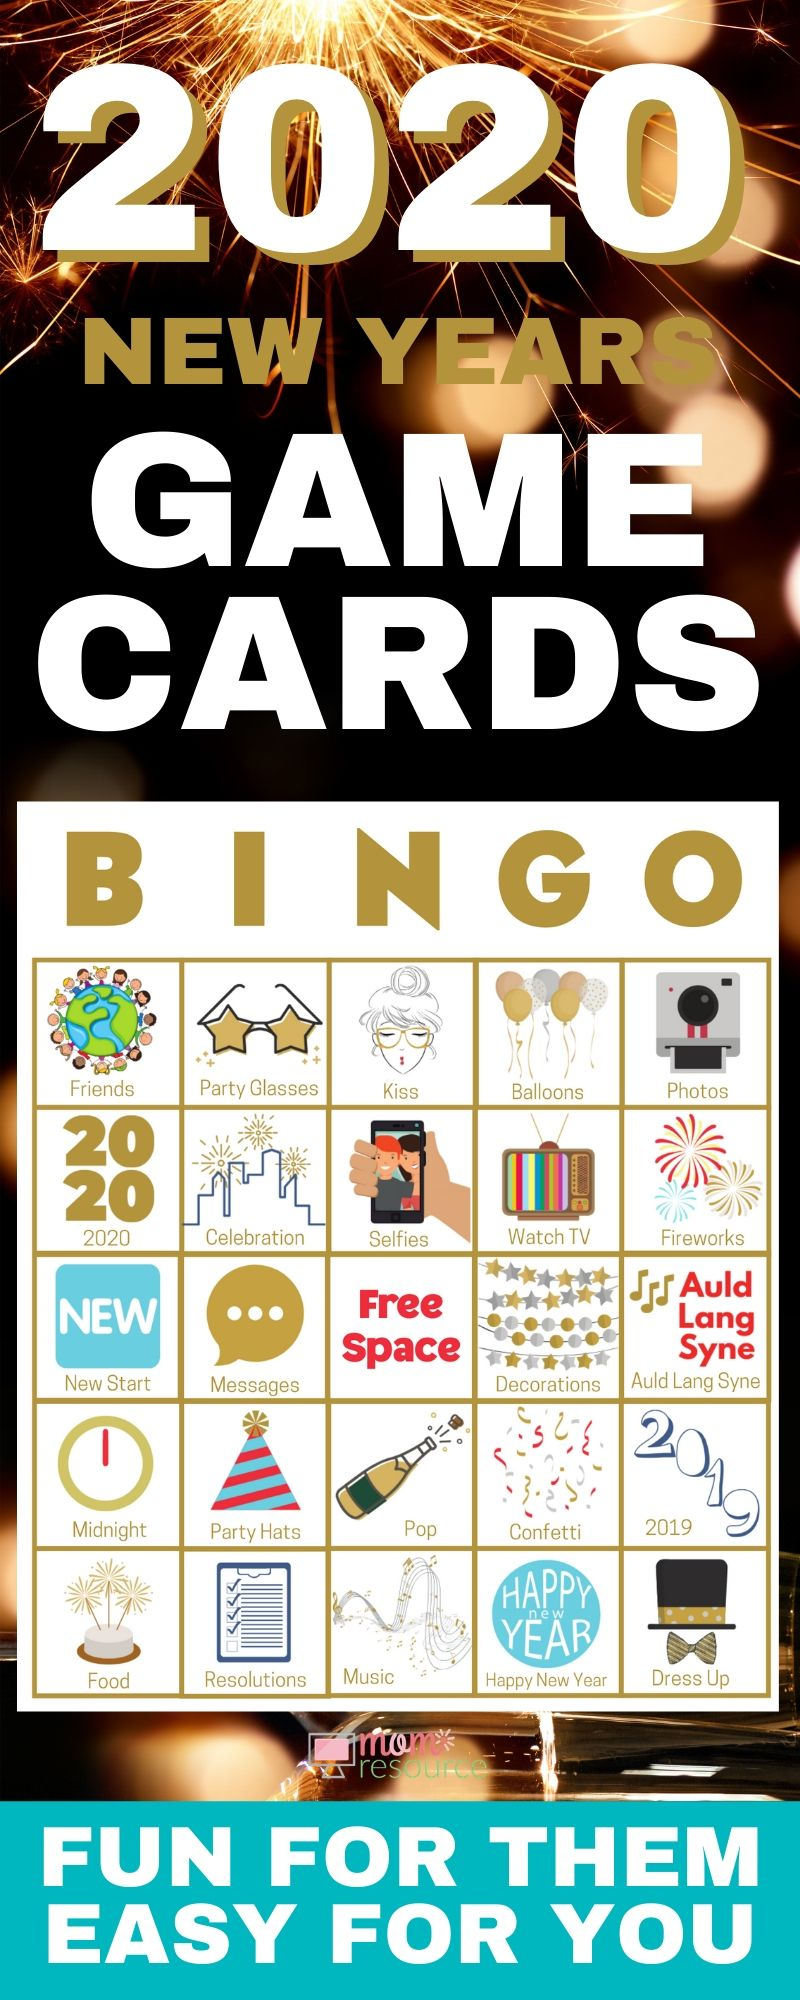 New Years Even bingo cards easy to play, modern & fun